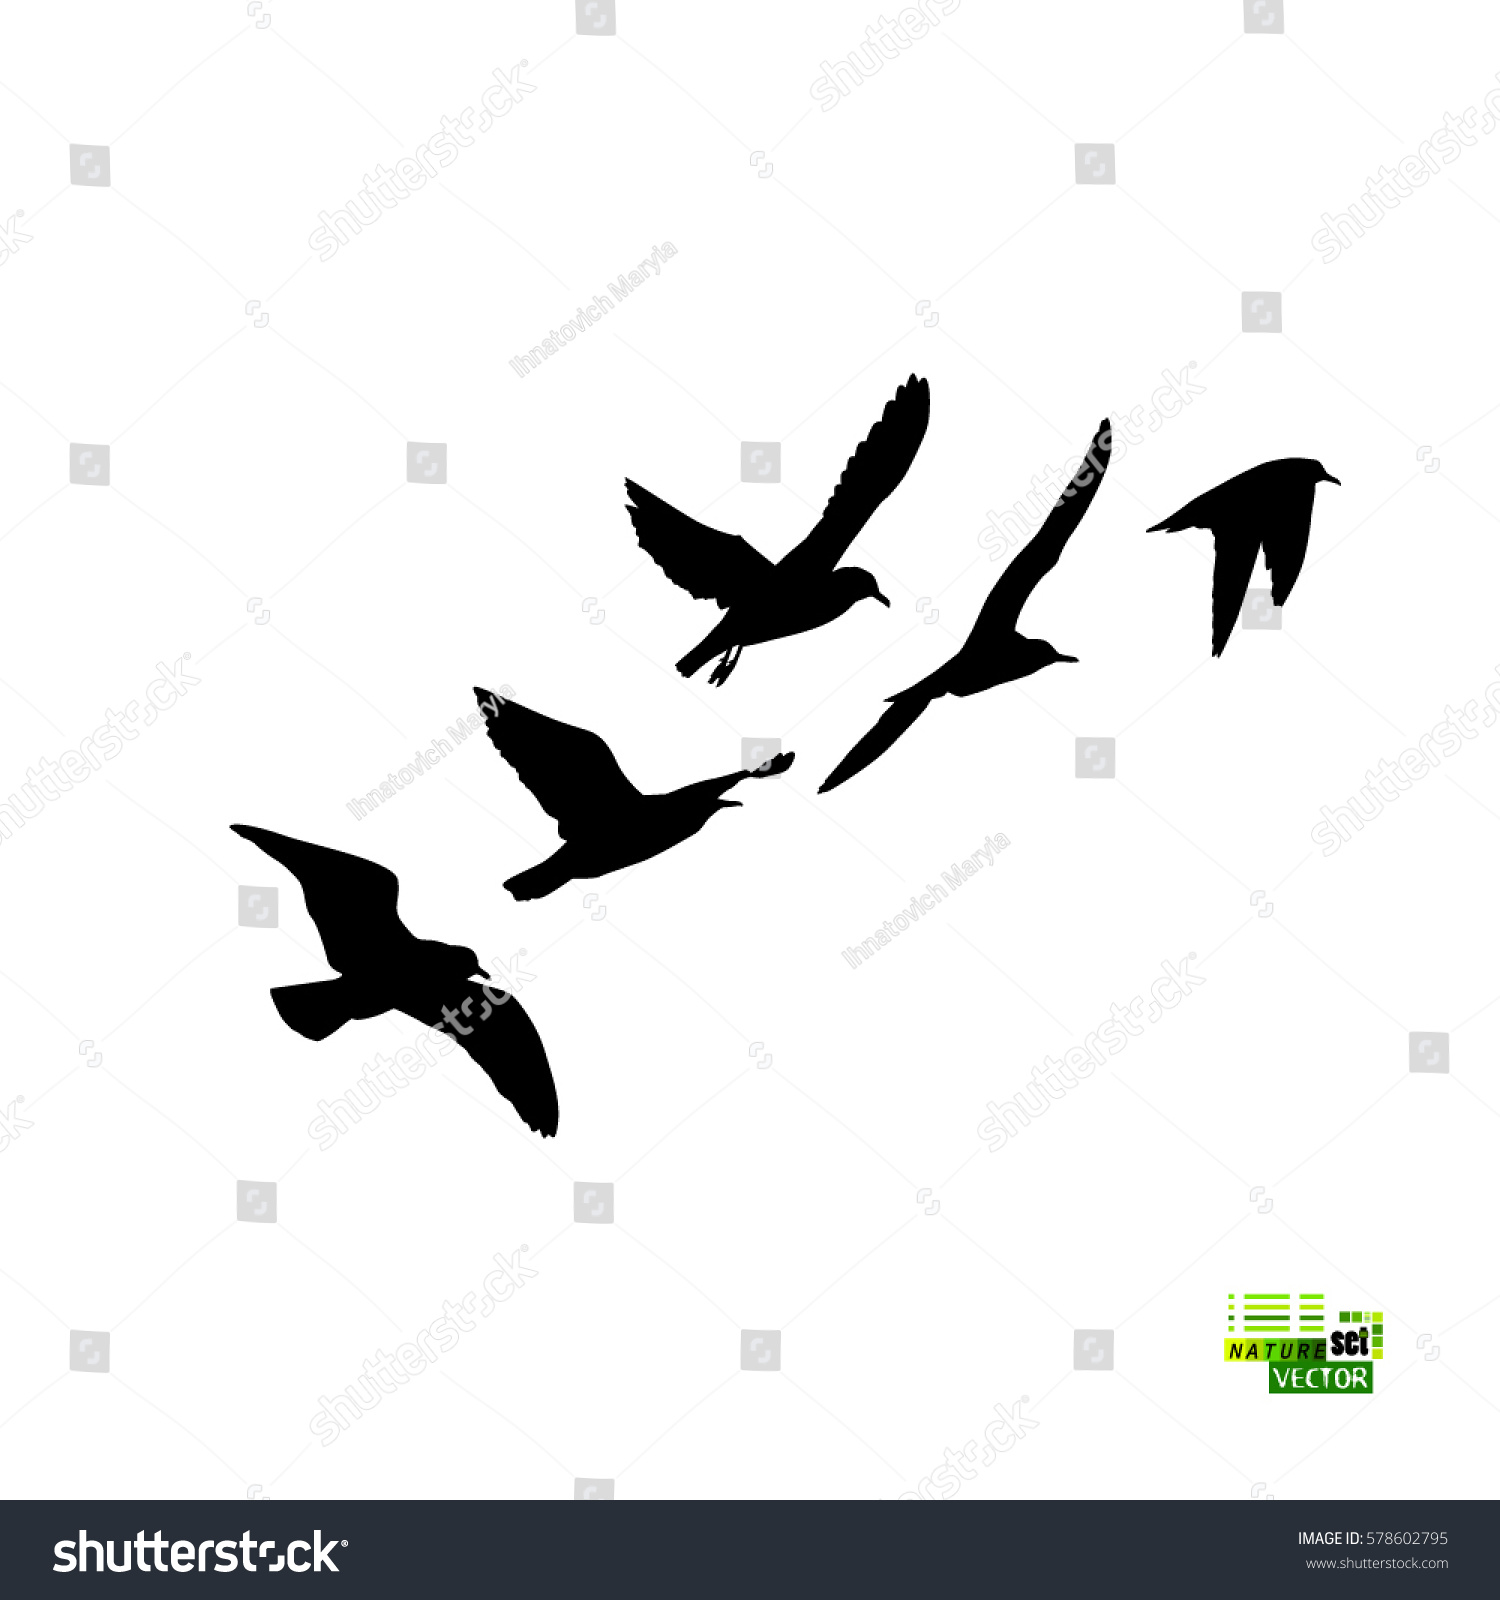 Flock Birds Silhouette Vector 578602795